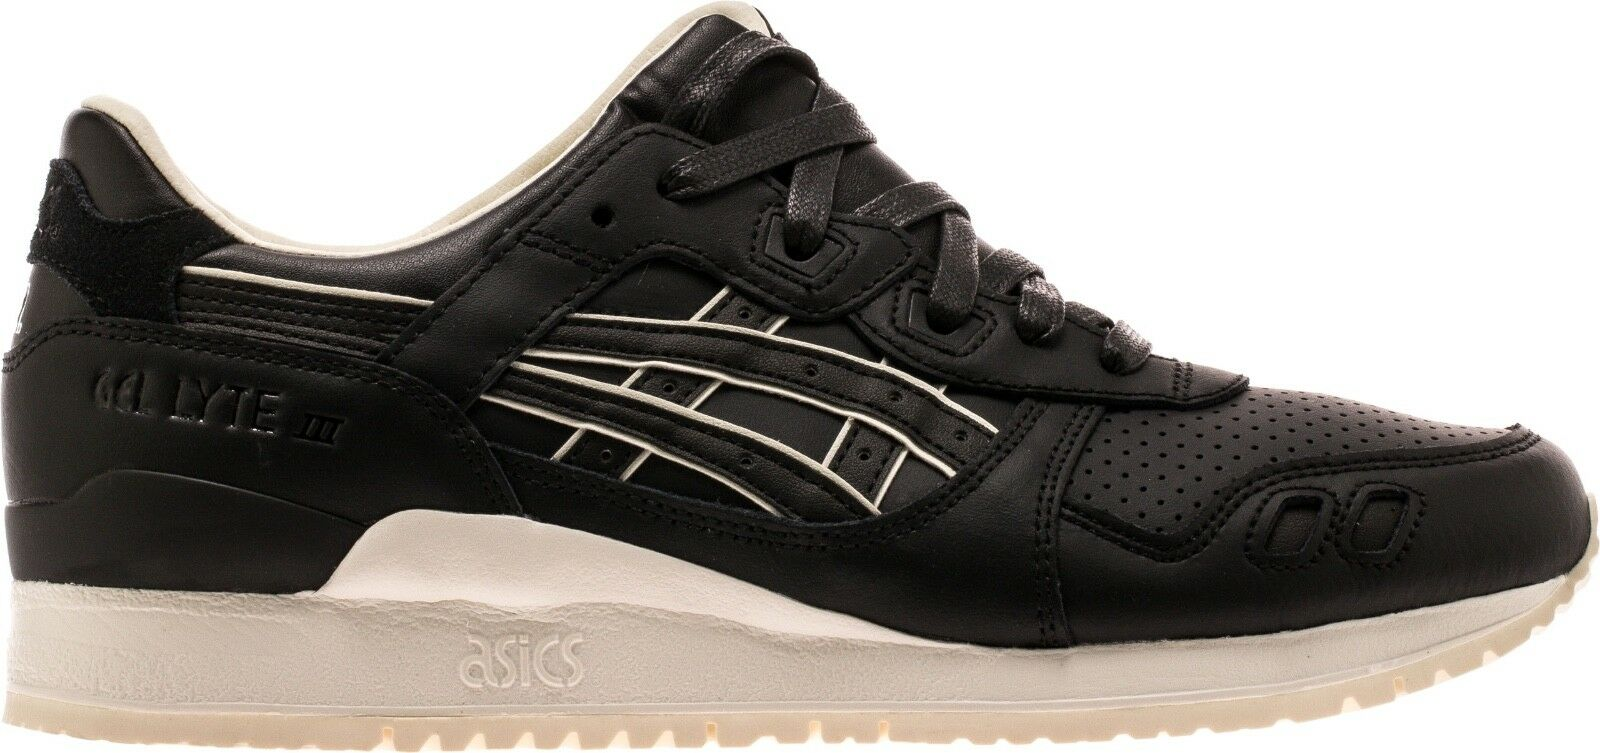 Brand New GEL-LYTE III Men's Athletic Fashion Sneakers [H6S3L 9090]